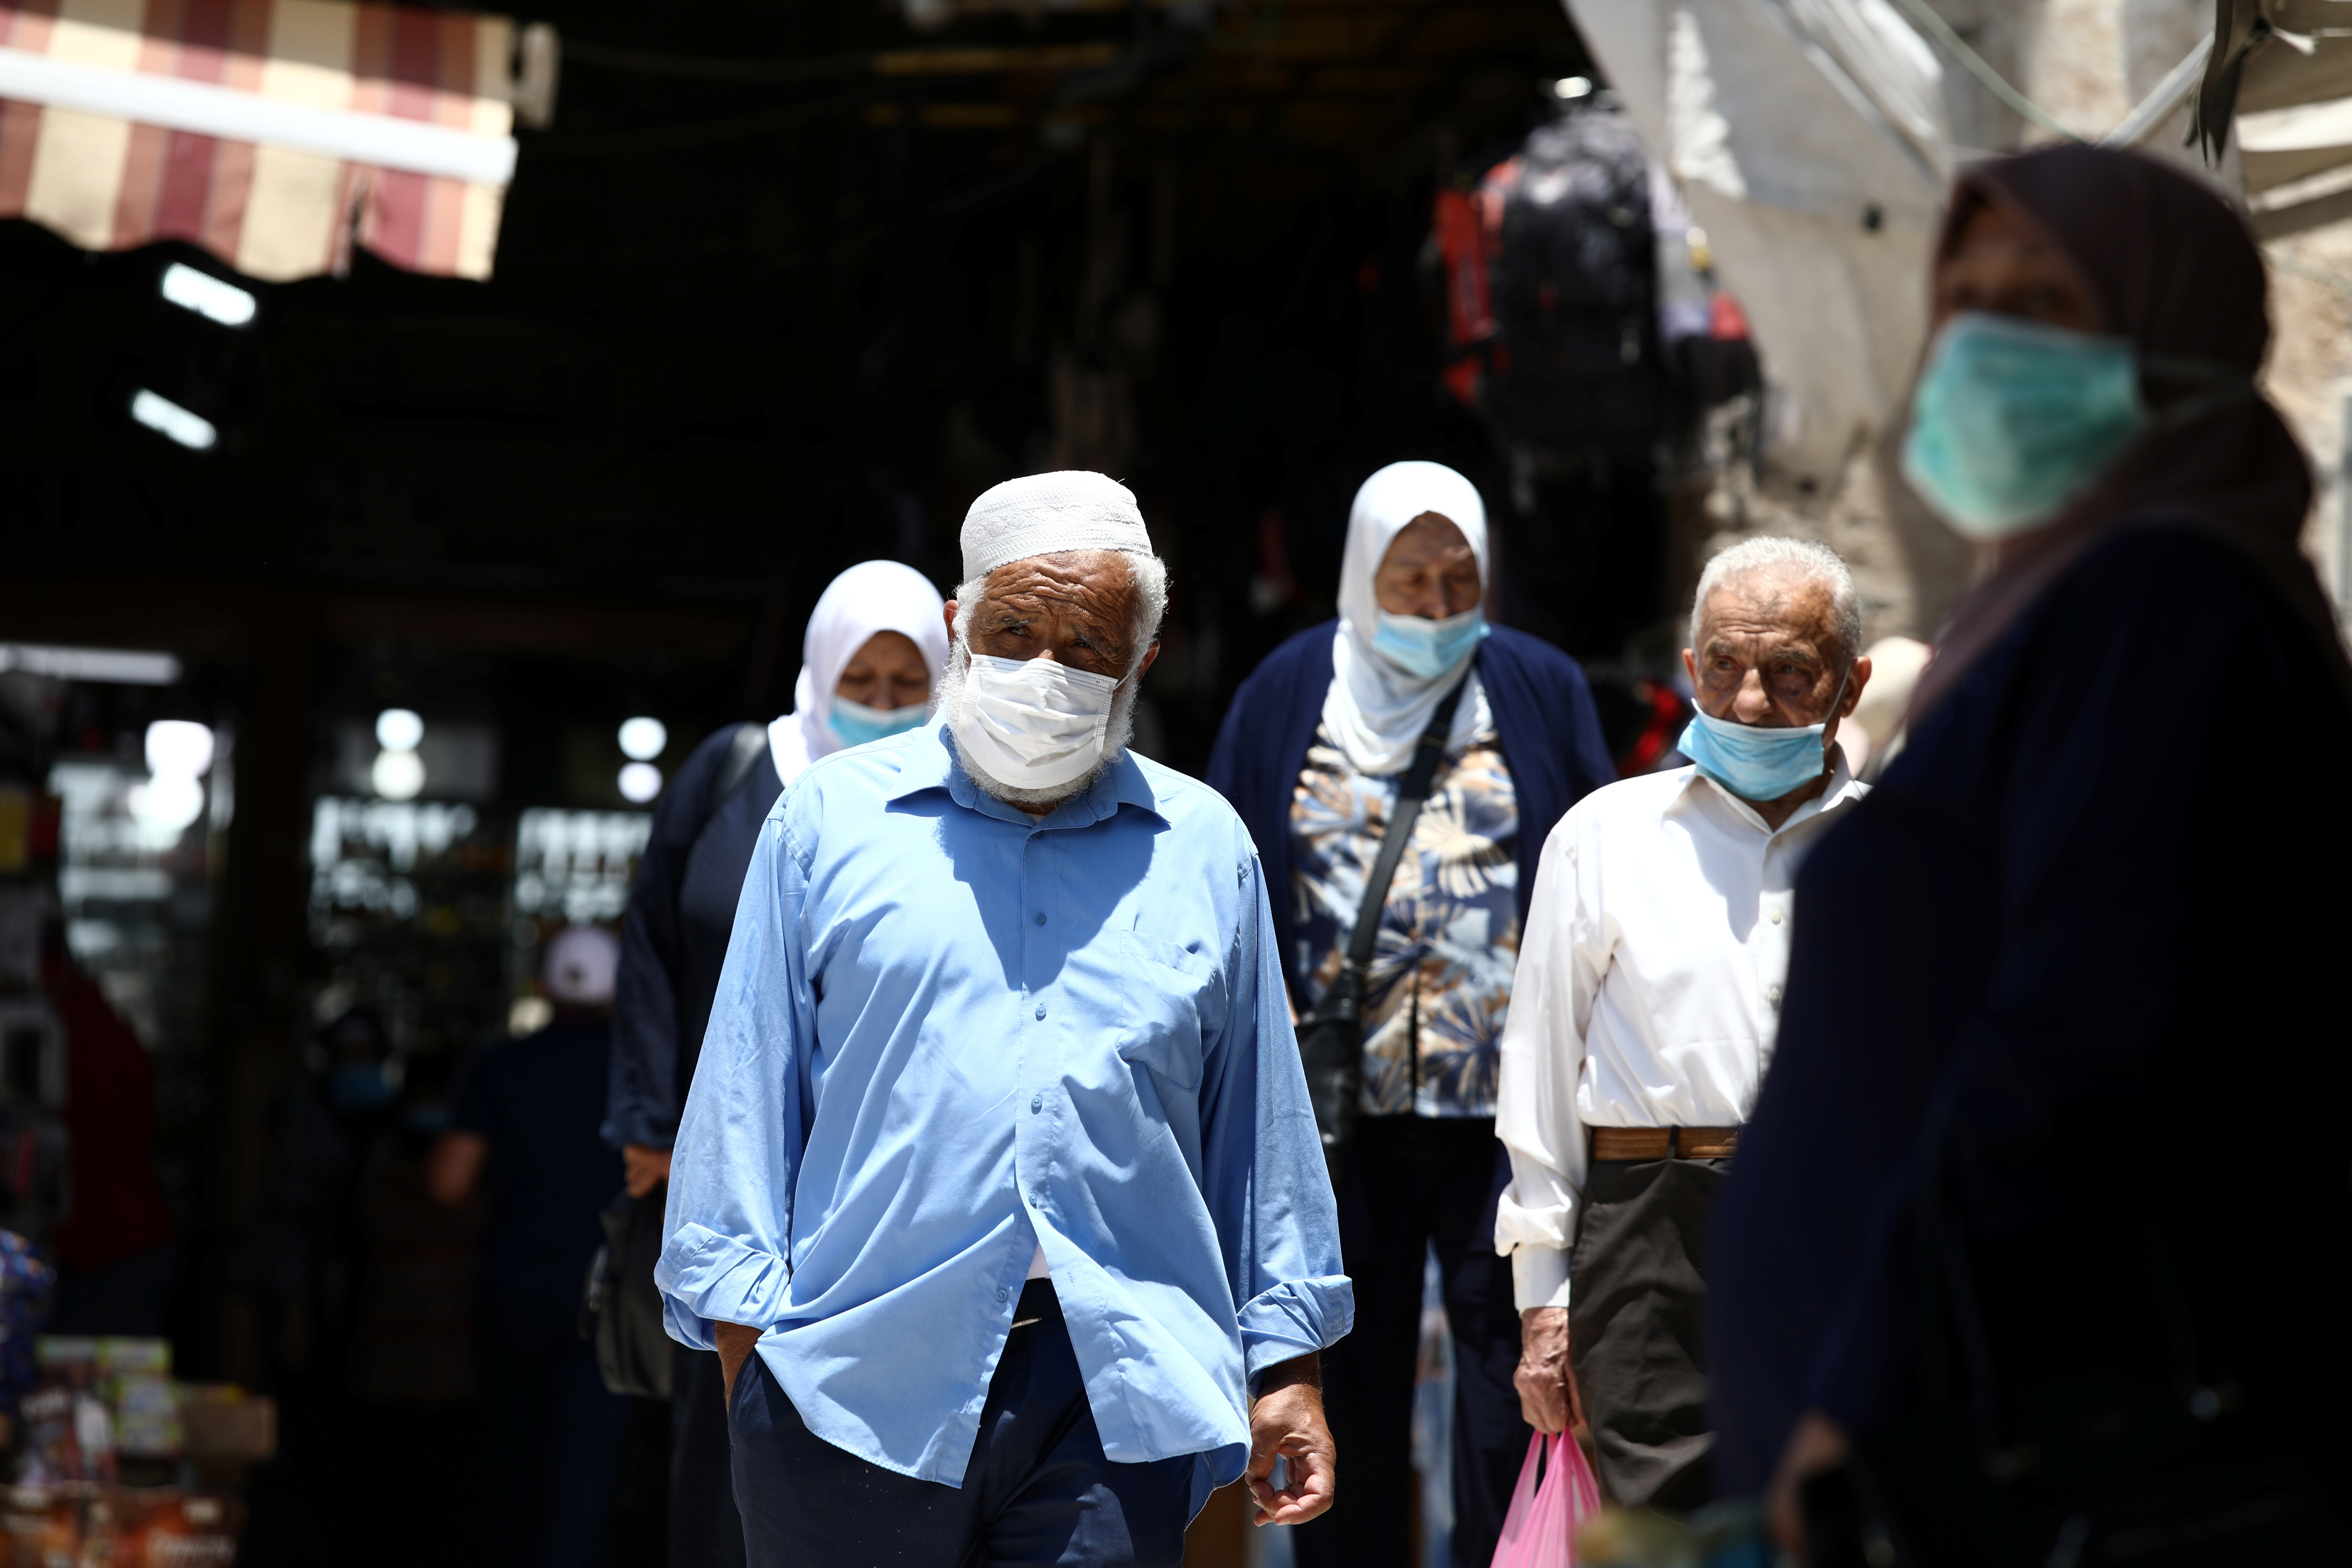 People wearing face masks to help fight the spread of the coronavirus disease (COVID-19) walk past shops in a market in Jerusalem's Old City July 6, 2020. REUTERS/Ammar Awad - RC2NNH99644G